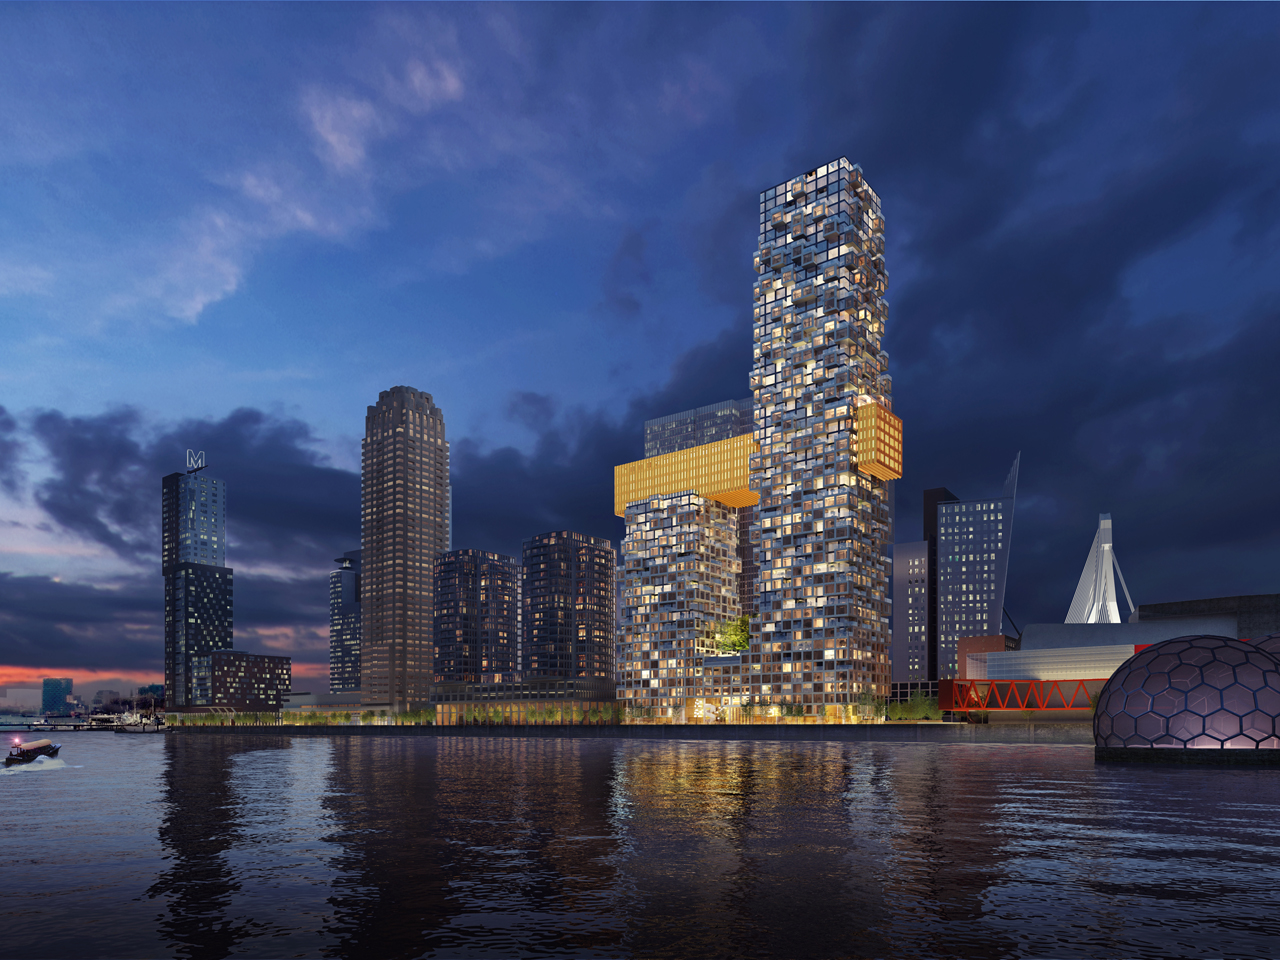 The Sax by MVRDV. All images courtesy of MVRDV and WAX Architectural Visualisations.